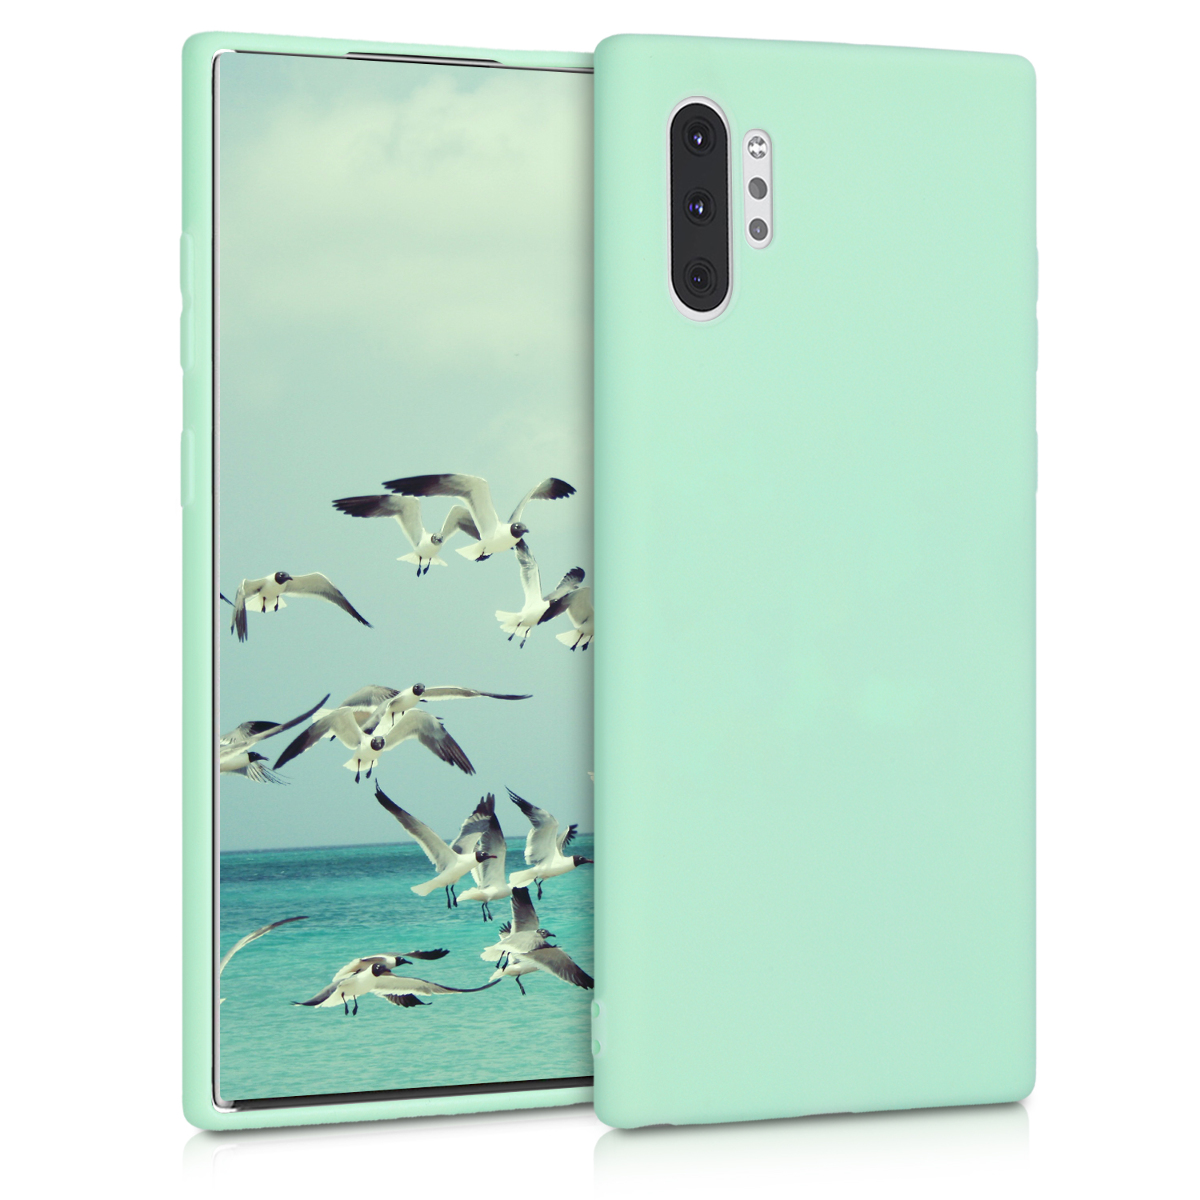 KW Θήκη Σιλικόνης Samsung Galaxy Note 10 Plus - Soft Flexible Shock Absorbent - Mint Matte (49353.50)